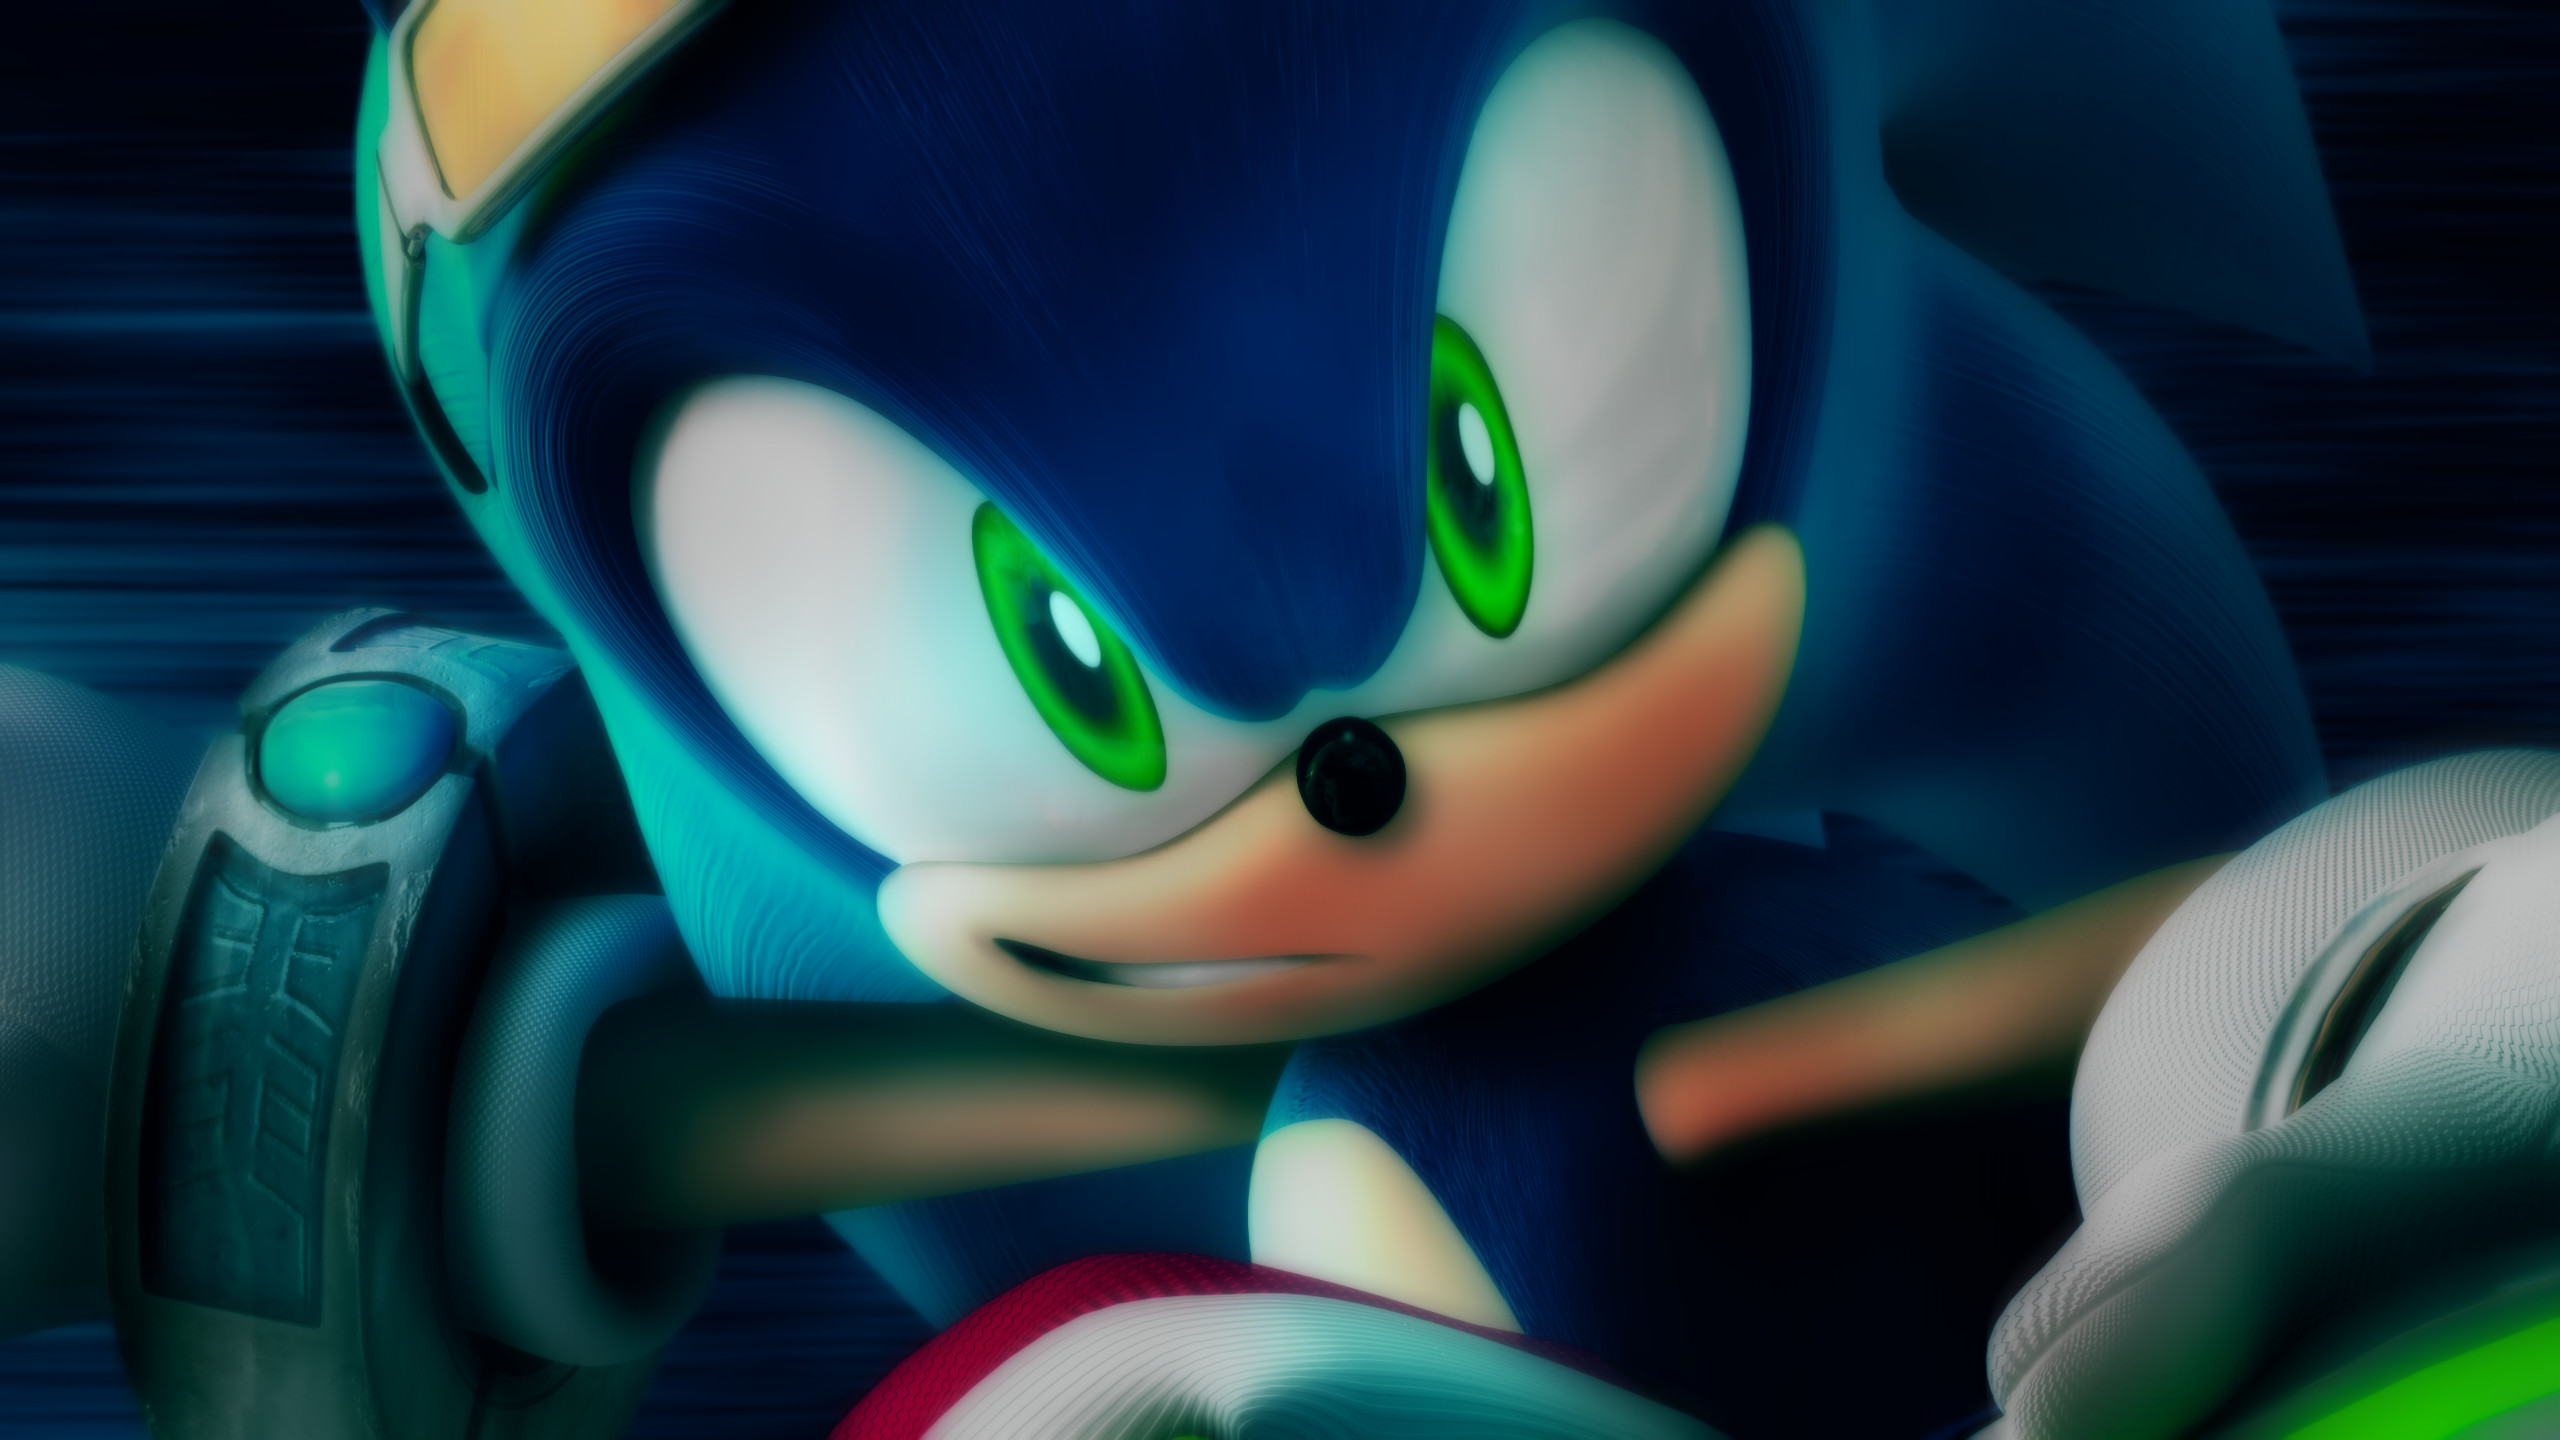 … Sonic the Hedgehog [98] by Light-Rock